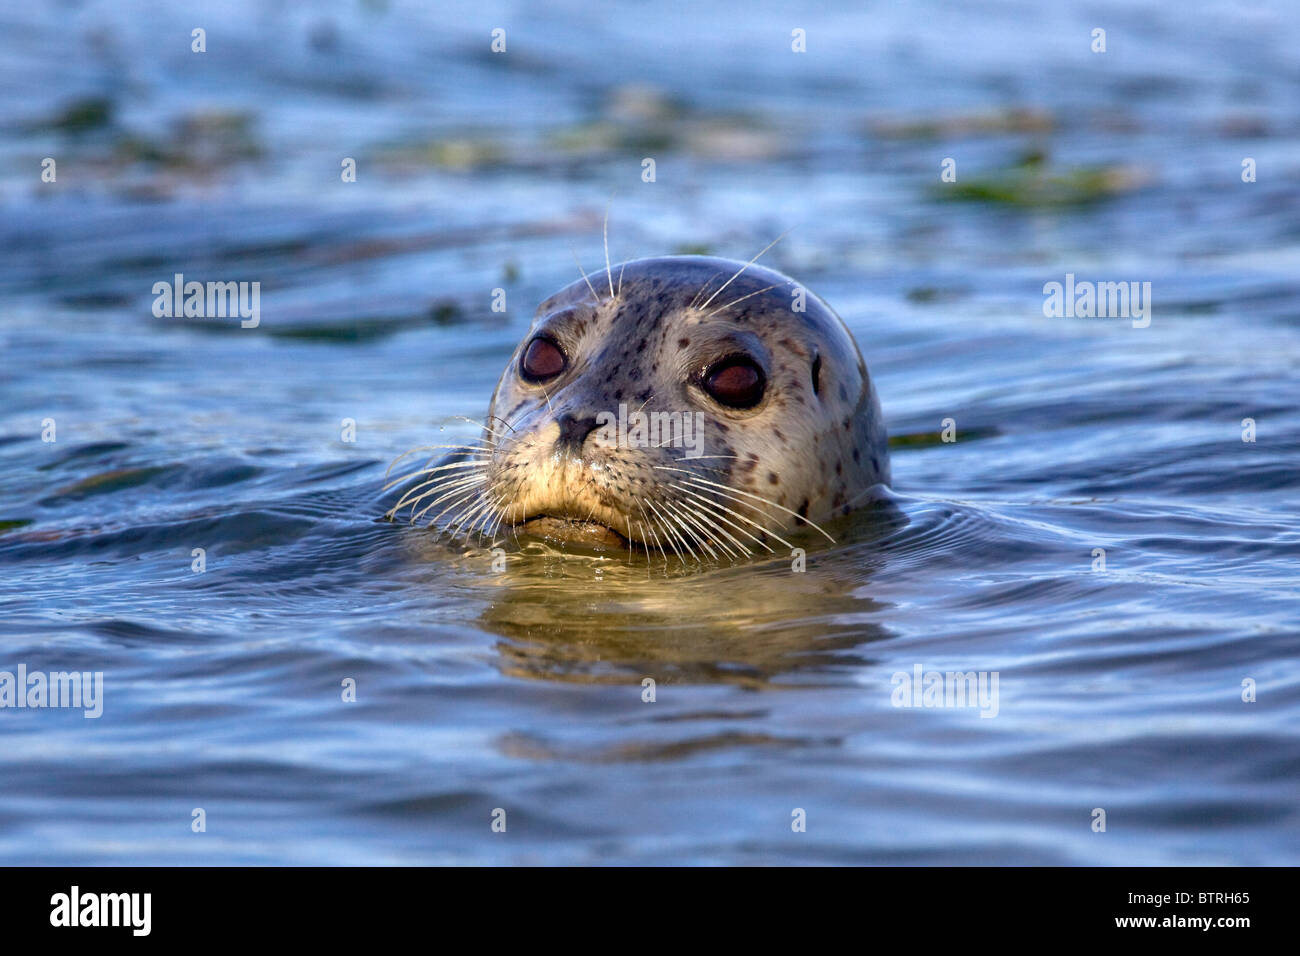 A harbor seal (Phoca vitulina) pops its head above water in Elkhorn Slough - Moss Landing, California. - Stock Image